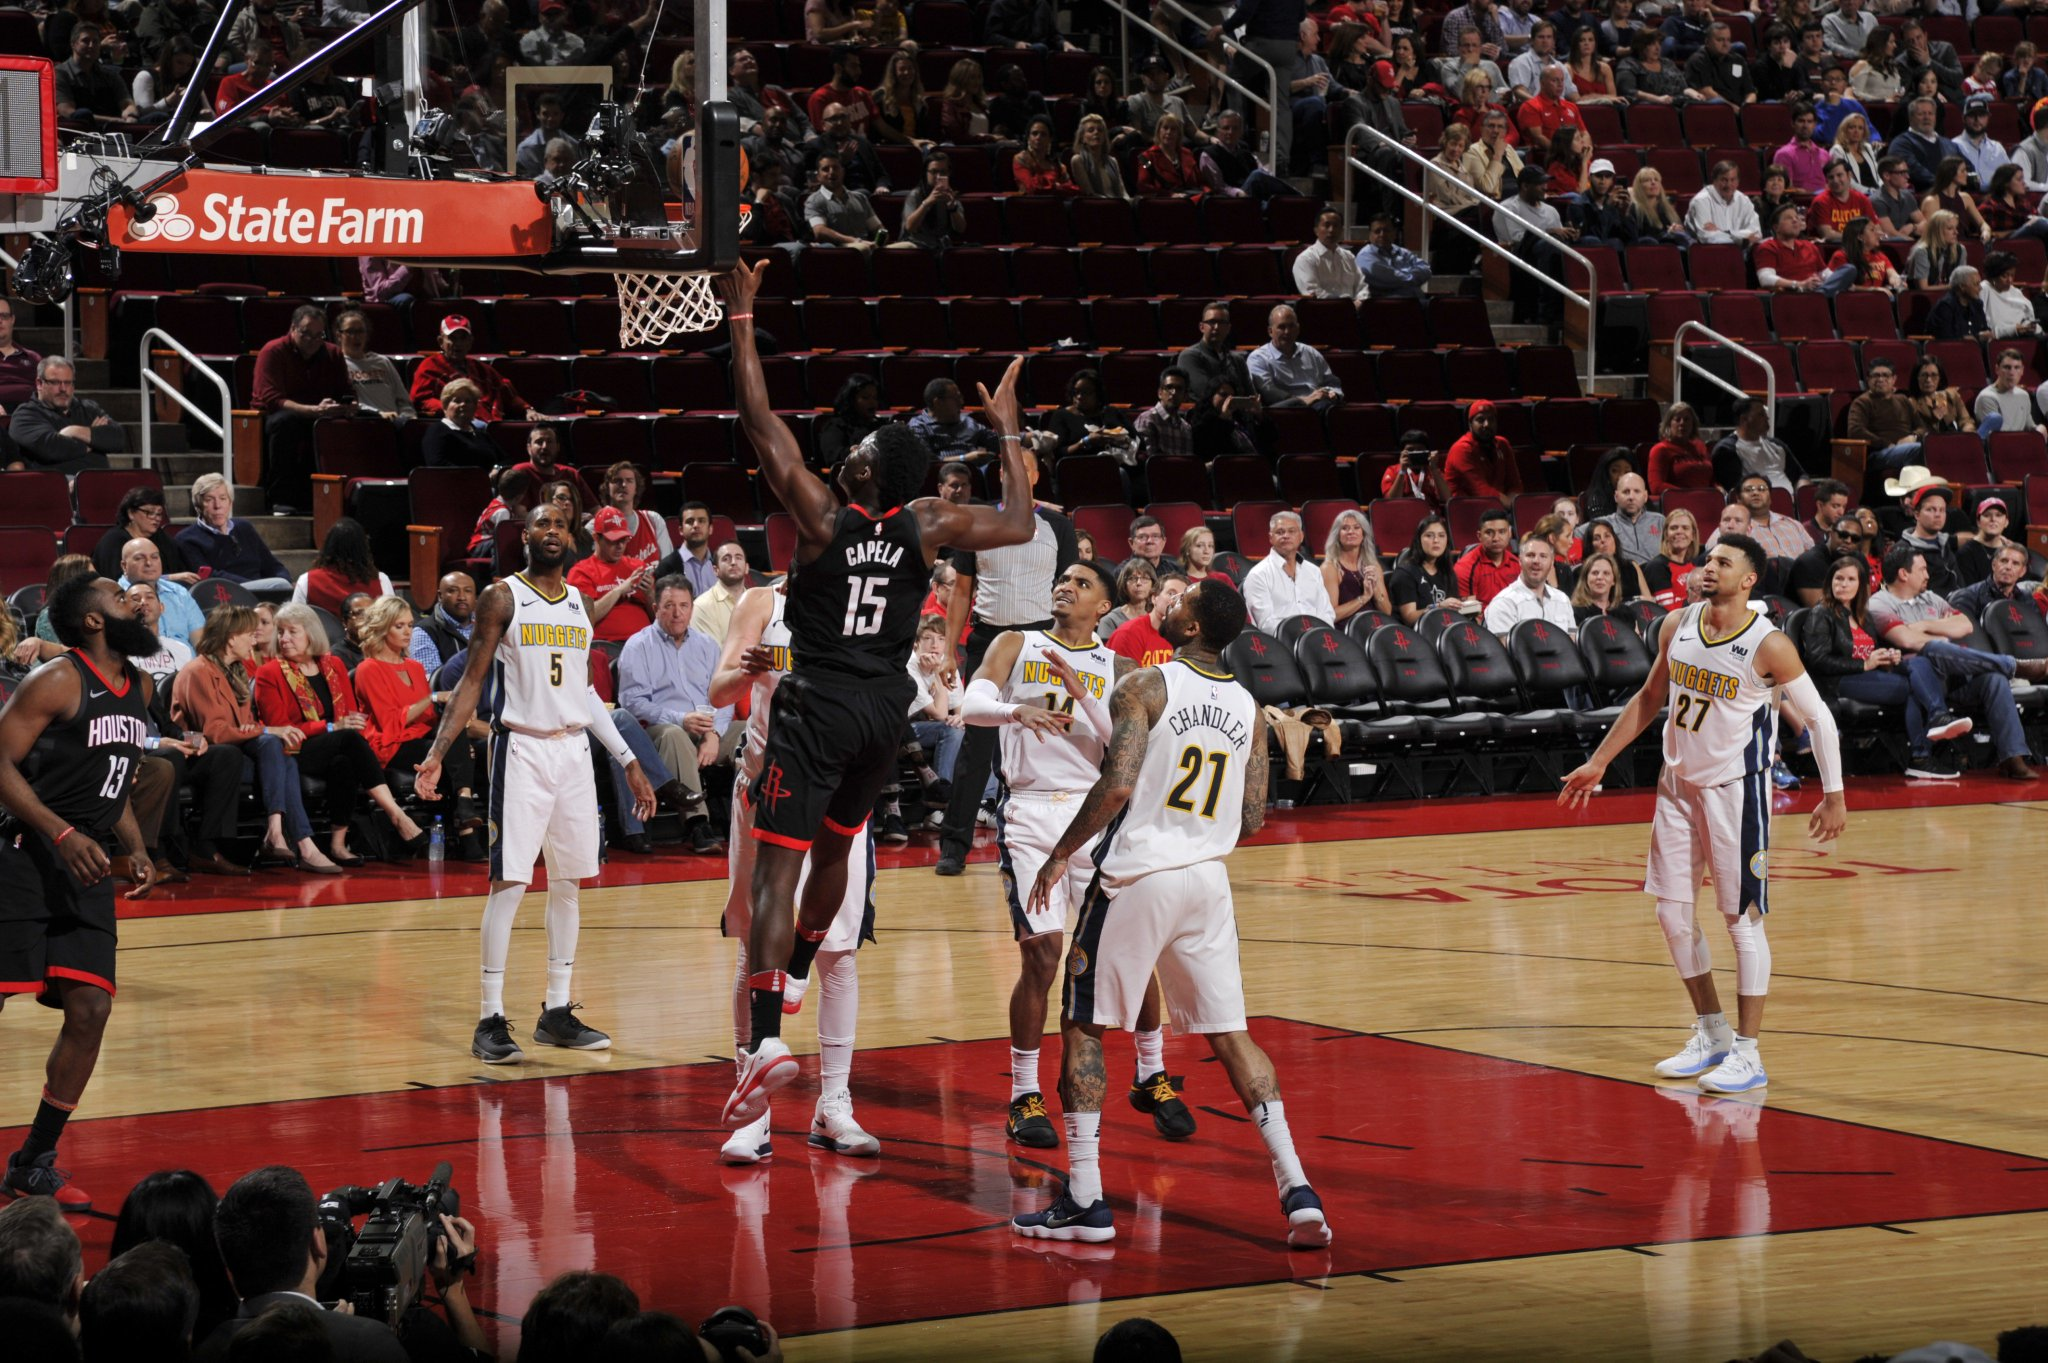 .@CapelaClint with a new career-high of 21 rebounds tonight! �� https://t.co/oyQhGnvwt2